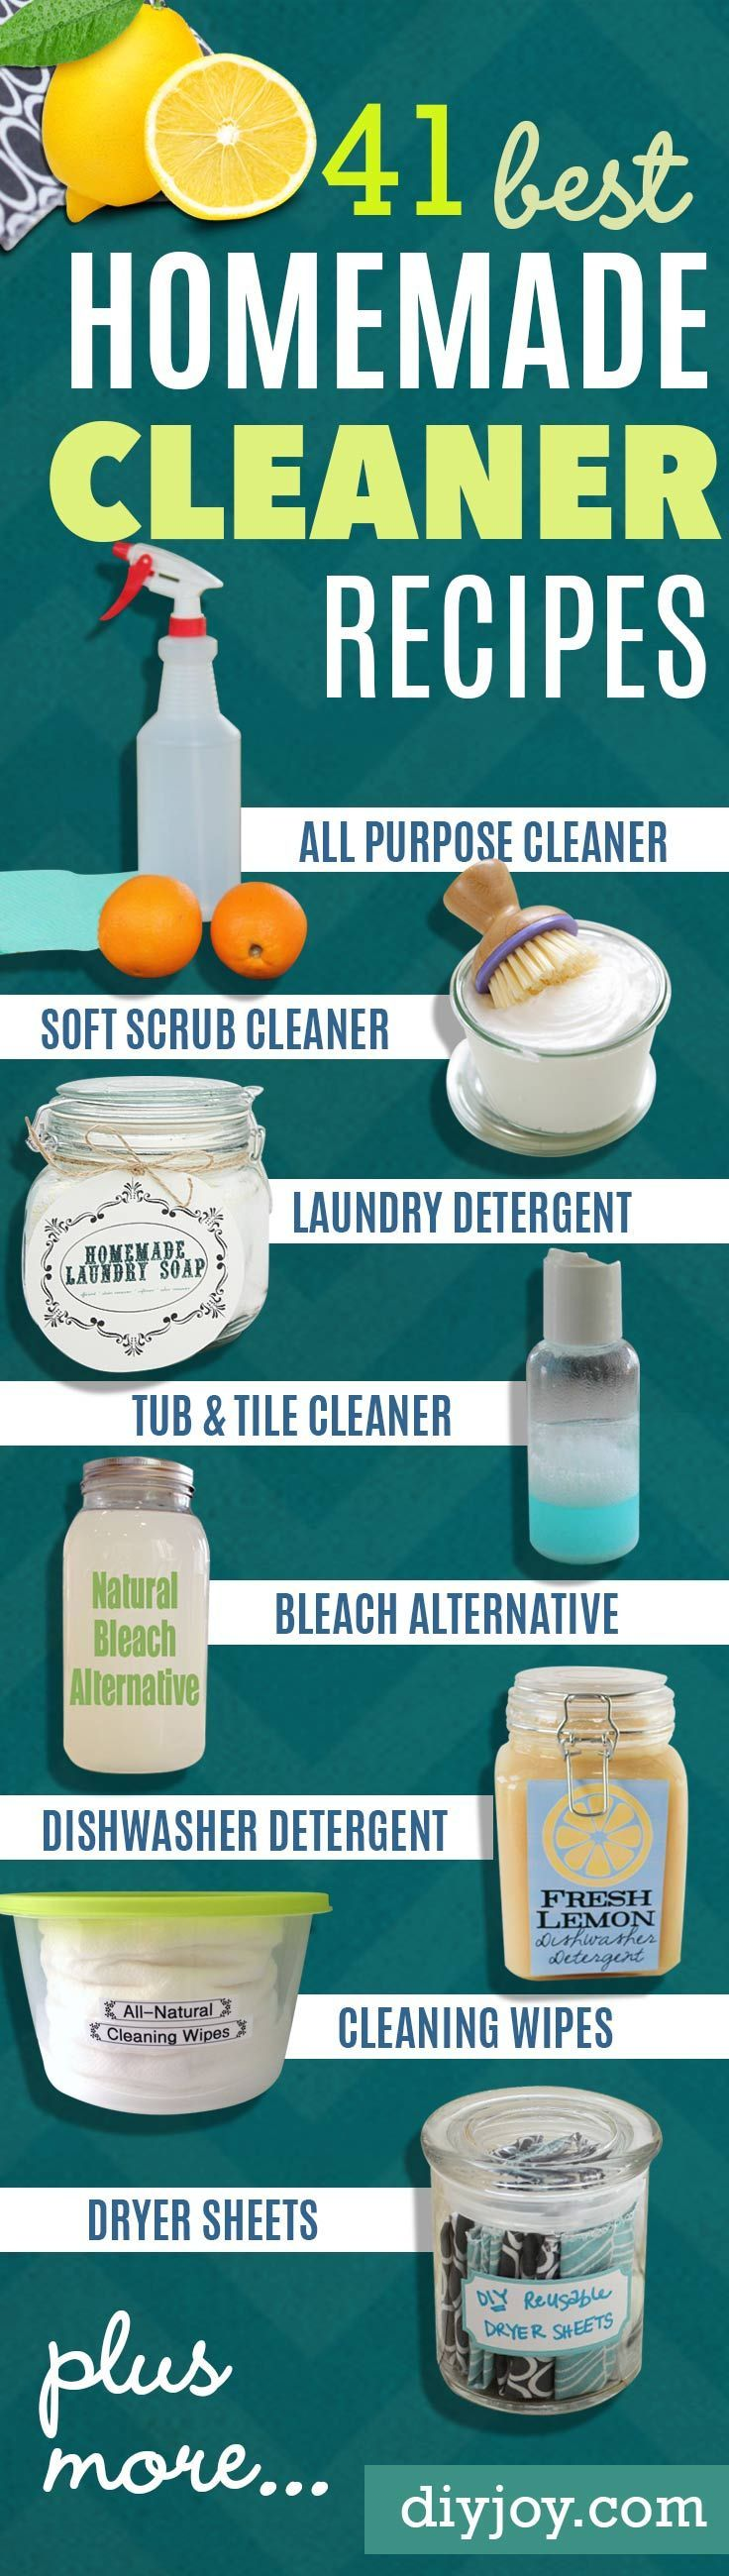 41 Best Homemade Cleaner Recipes. Best 25  Furniture care ideas on Pinterest   DIY leather couch